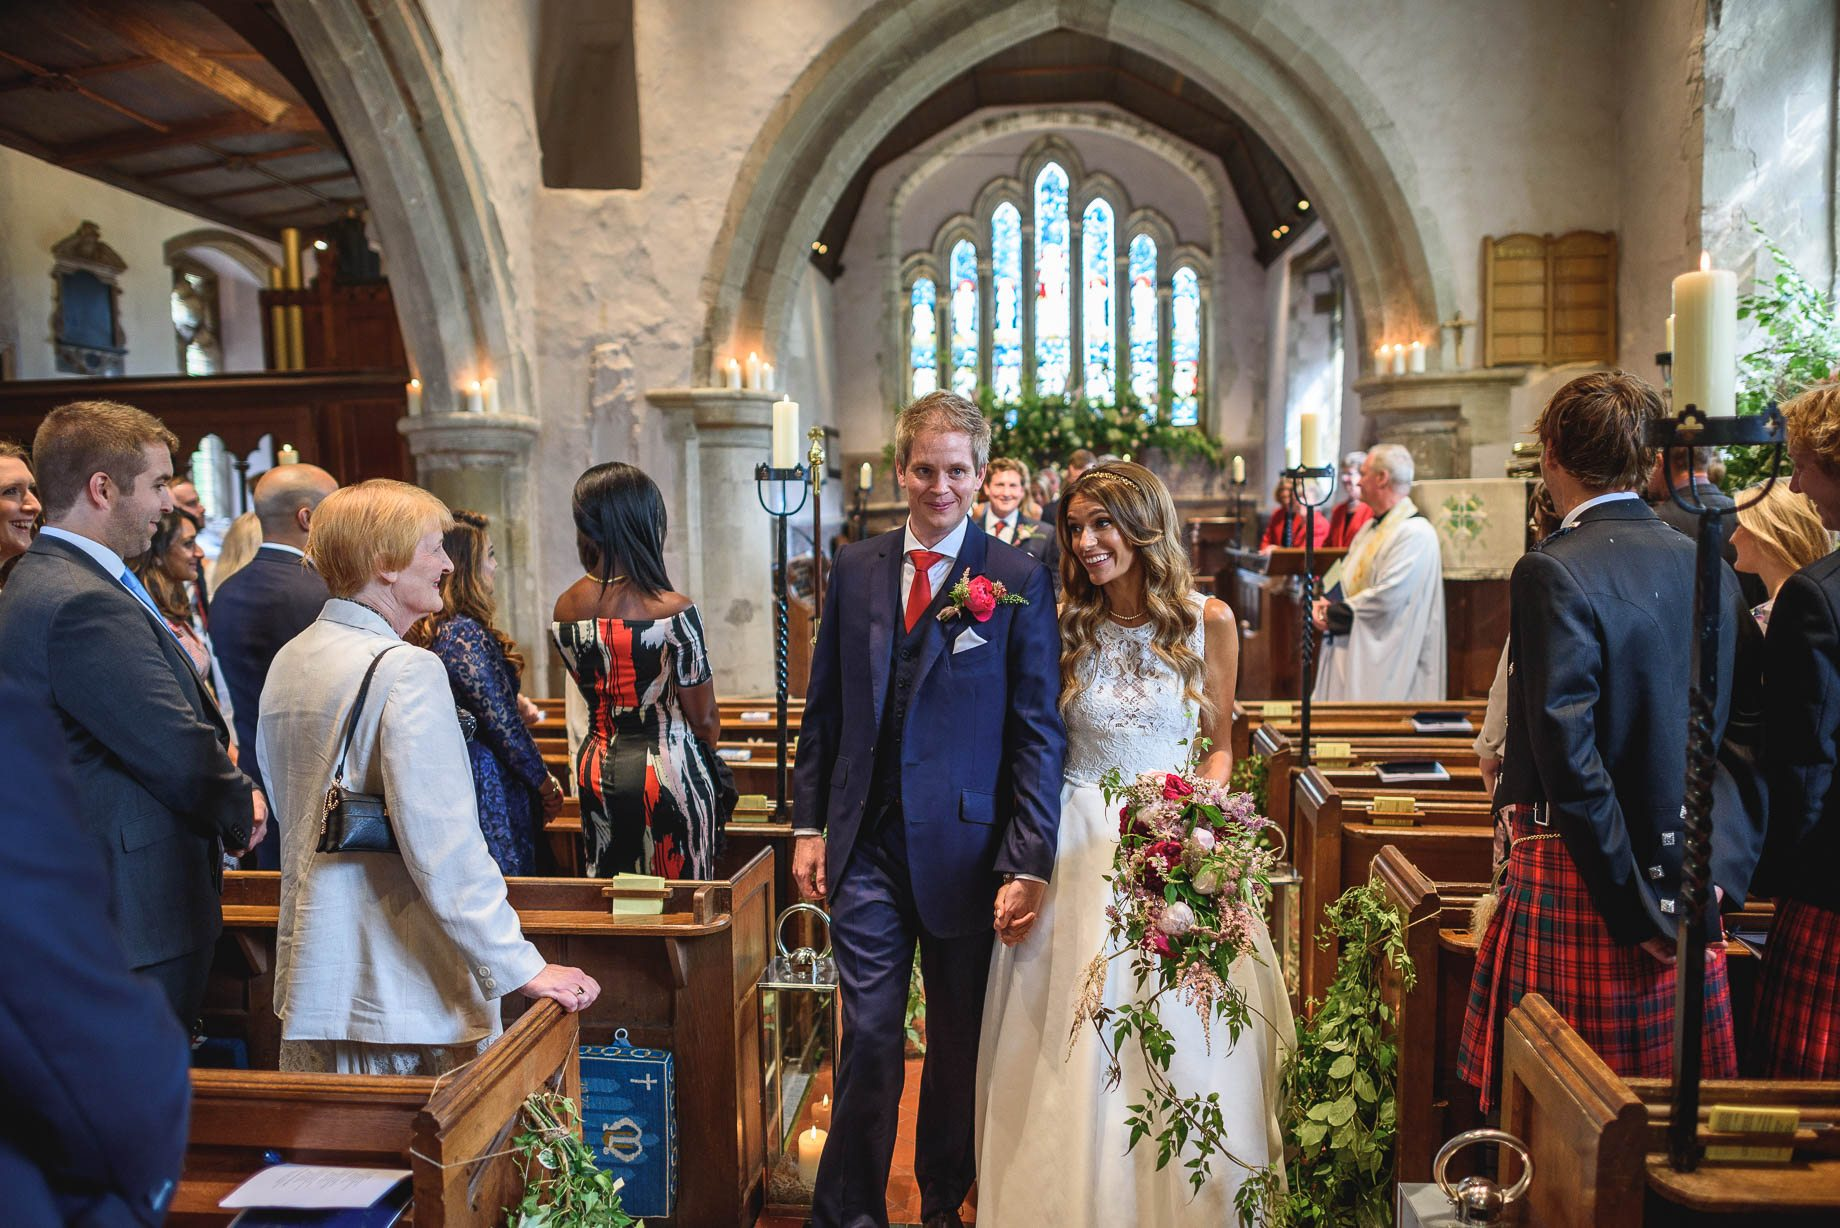 surrey-wedding-photography-guy-collier-photography-claire-and-tom-92-of-227